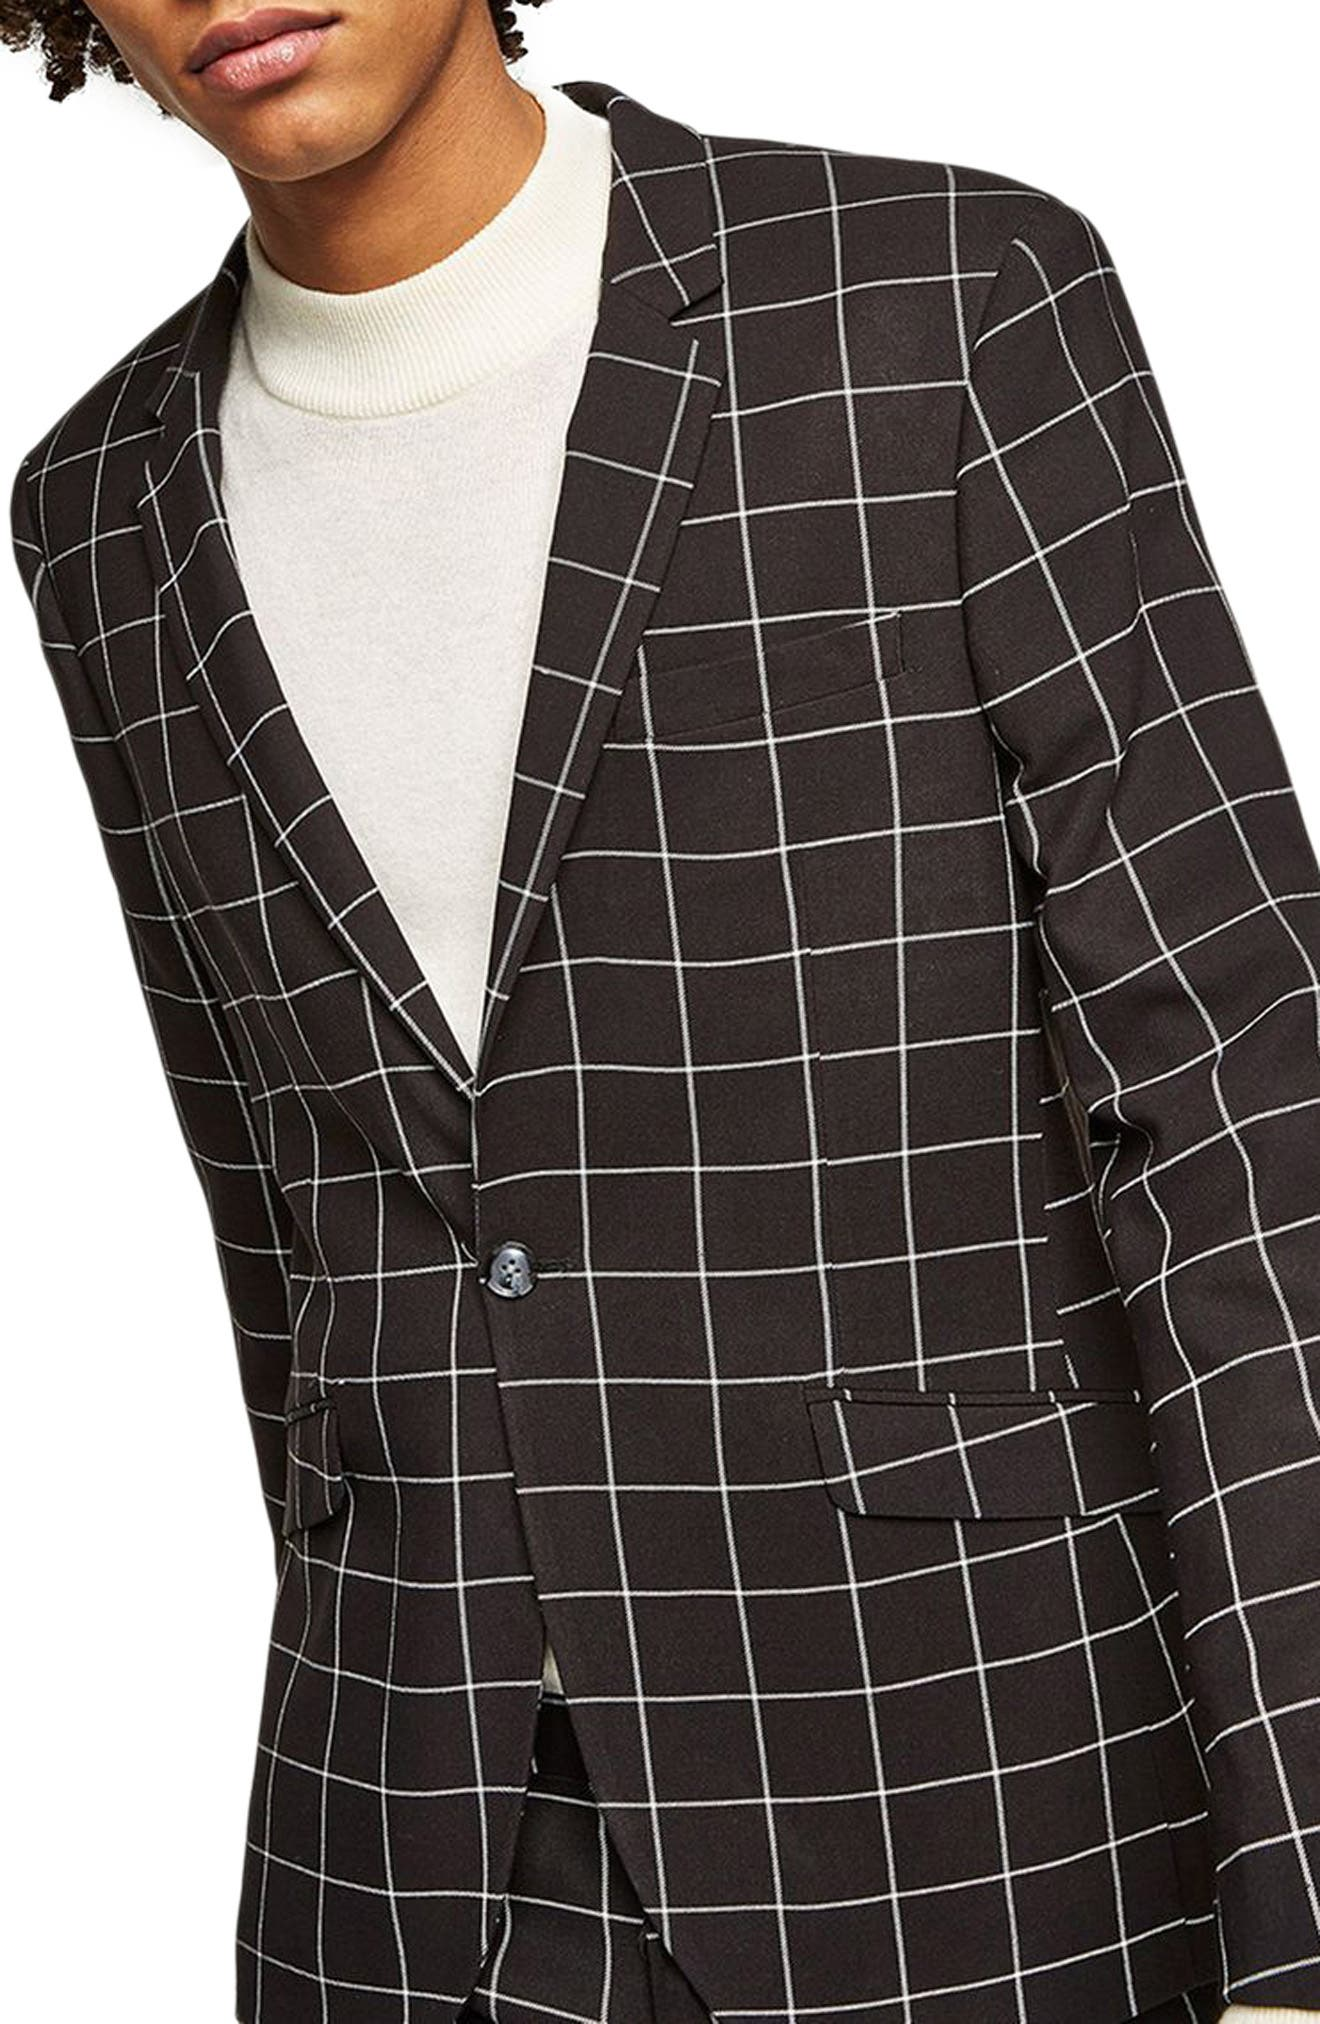 Skinny Fit Windowpane Suit Jacket,                             Main thumbnail 1, color,                             BLACK MULTI